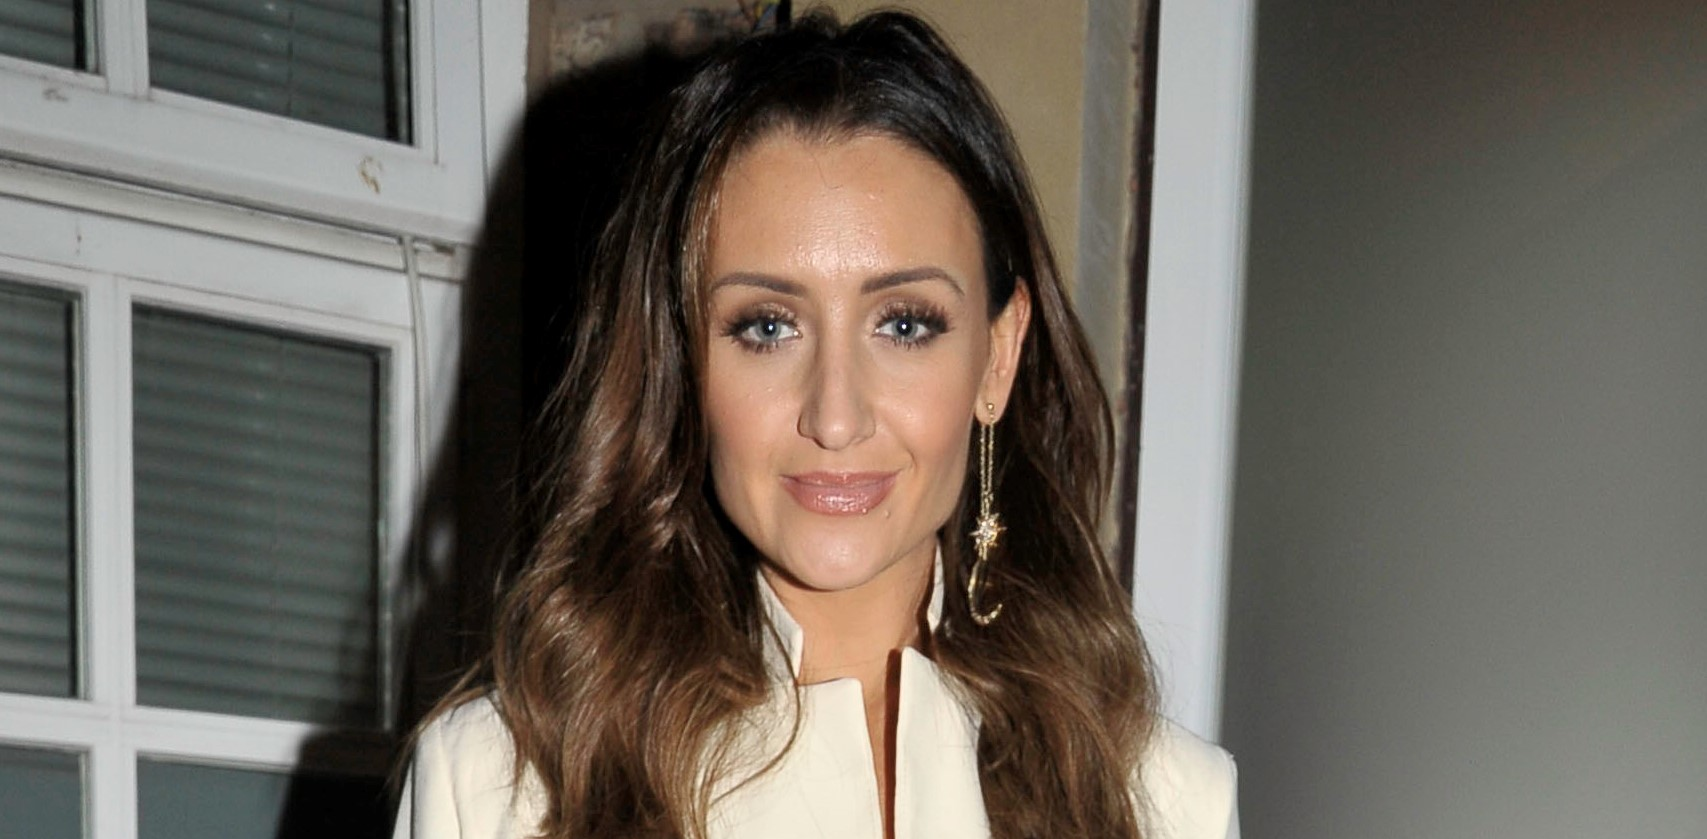 'Heartbroken' Catherine Tyldesley forced to pull out of Strictly tour after injury